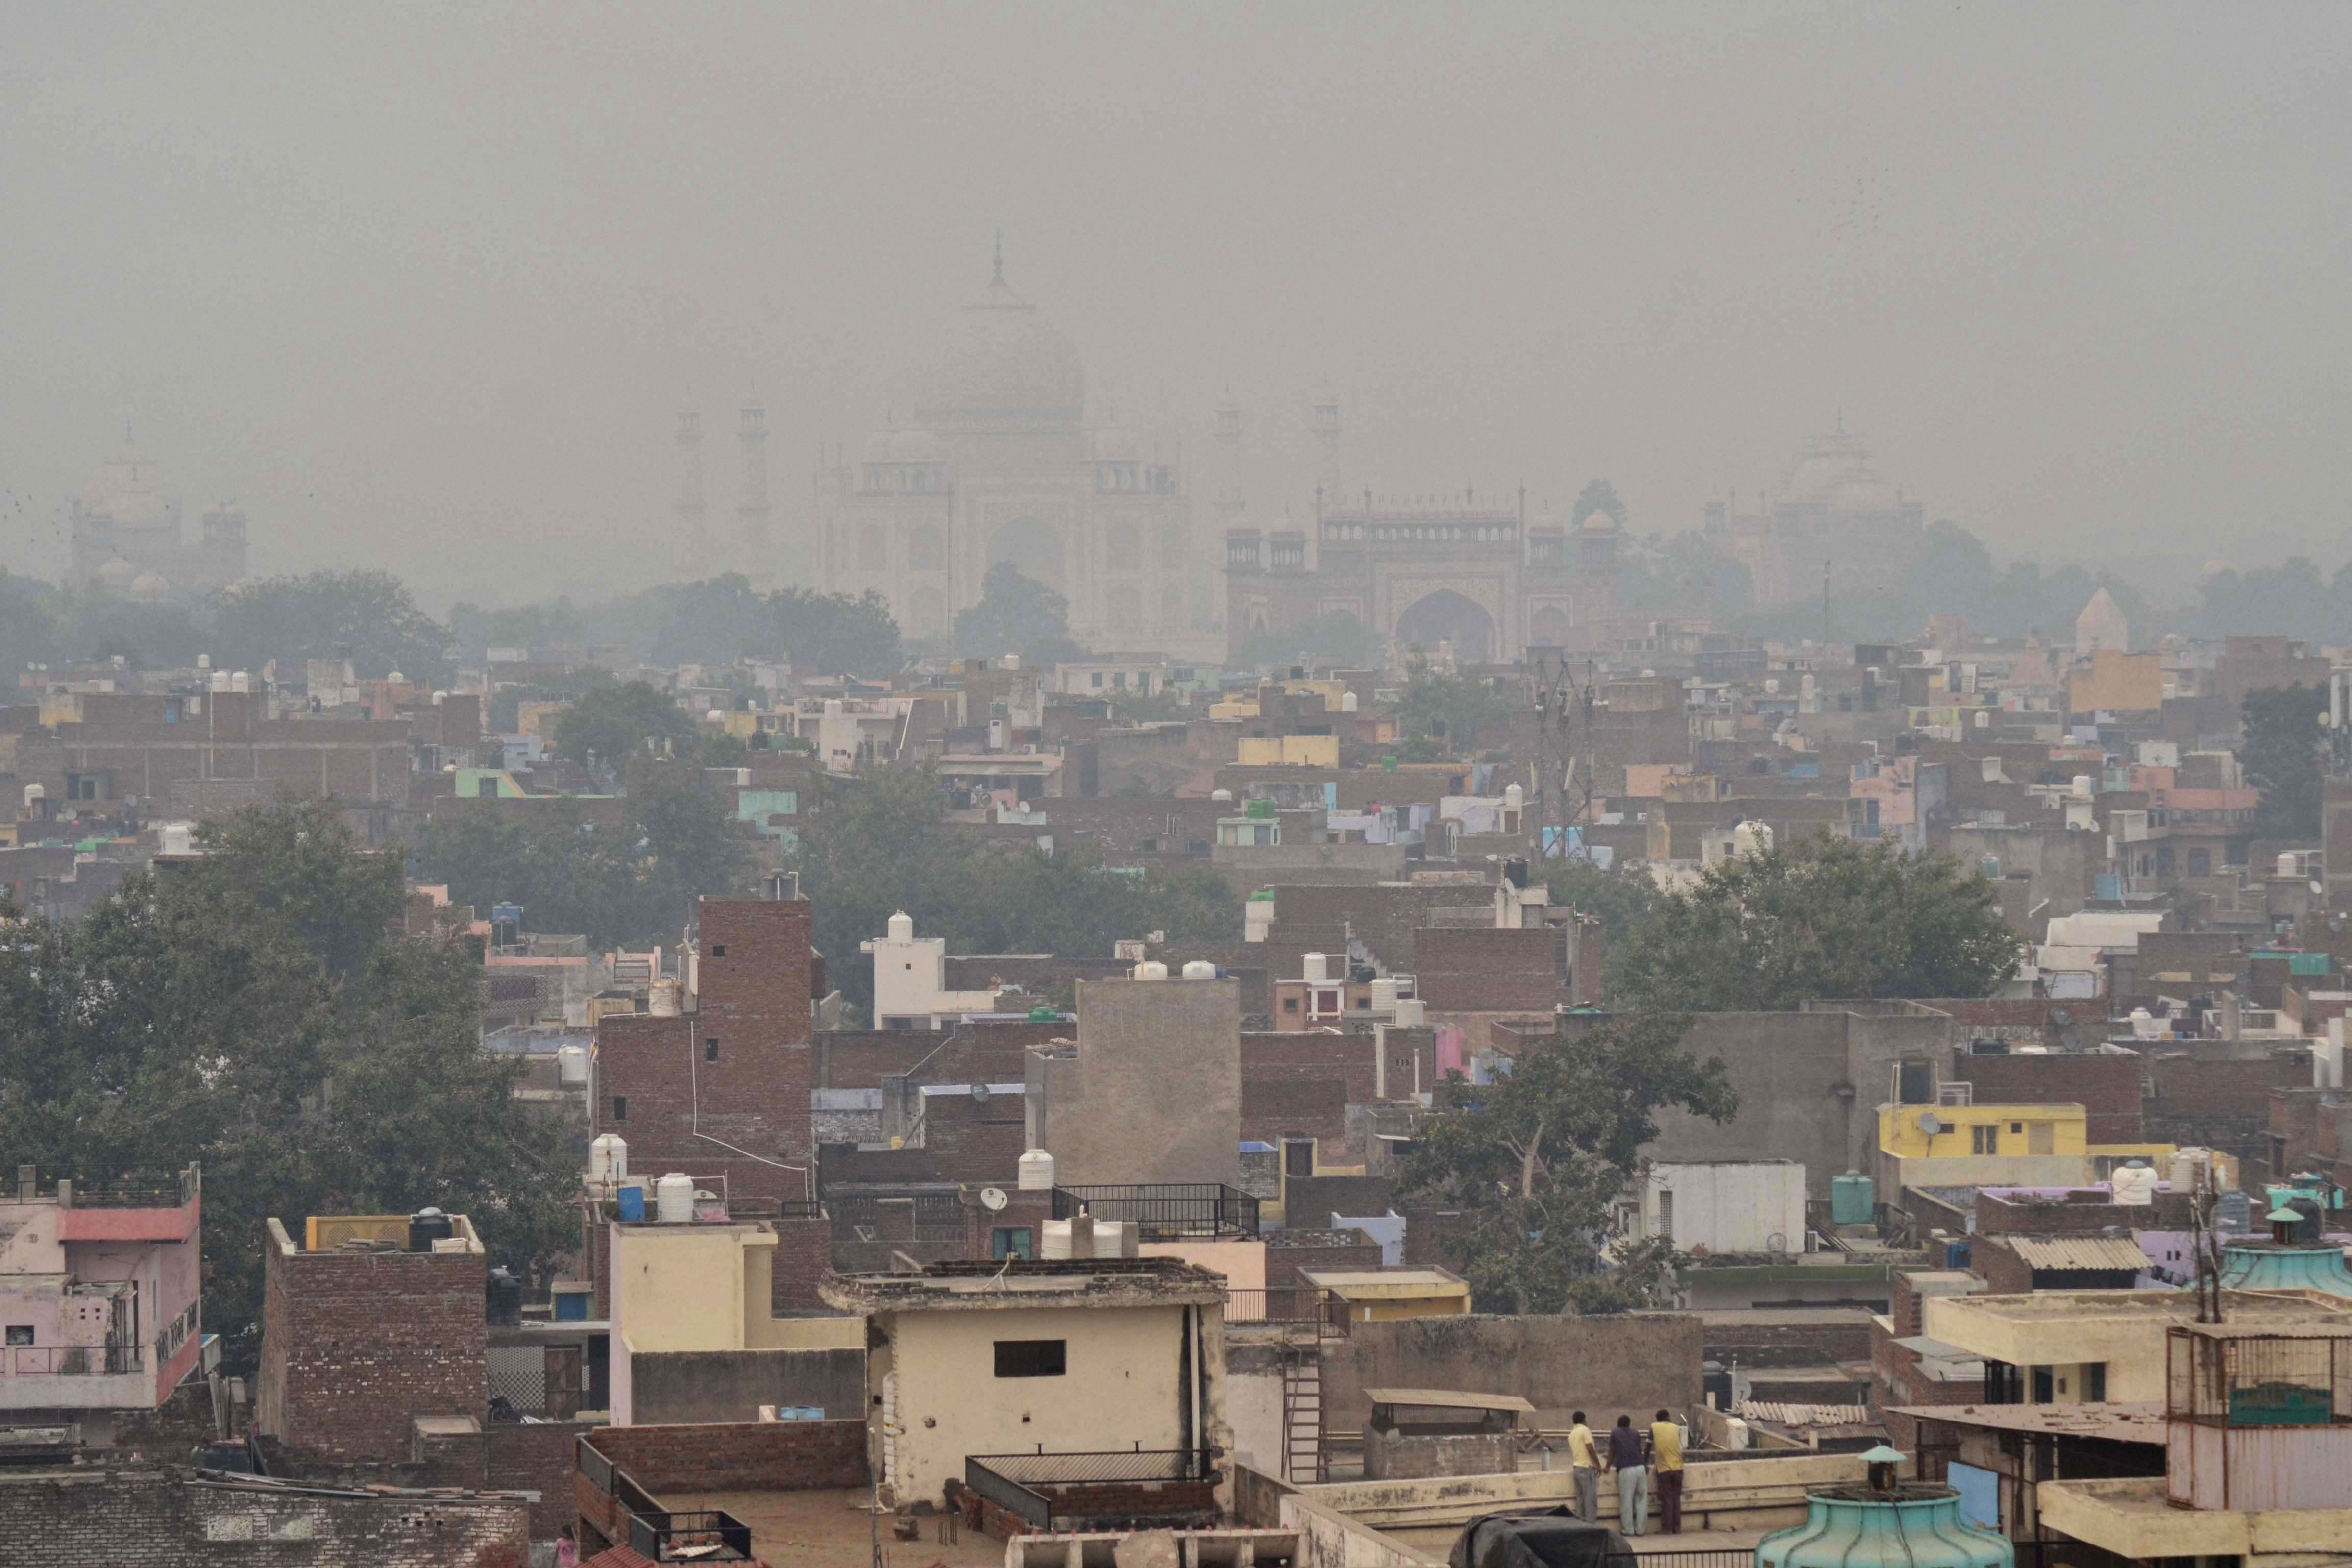 A view of Agra city with the Taj Mahal shrouded in smog, in Agra, Wednesday, October 30, 2019.